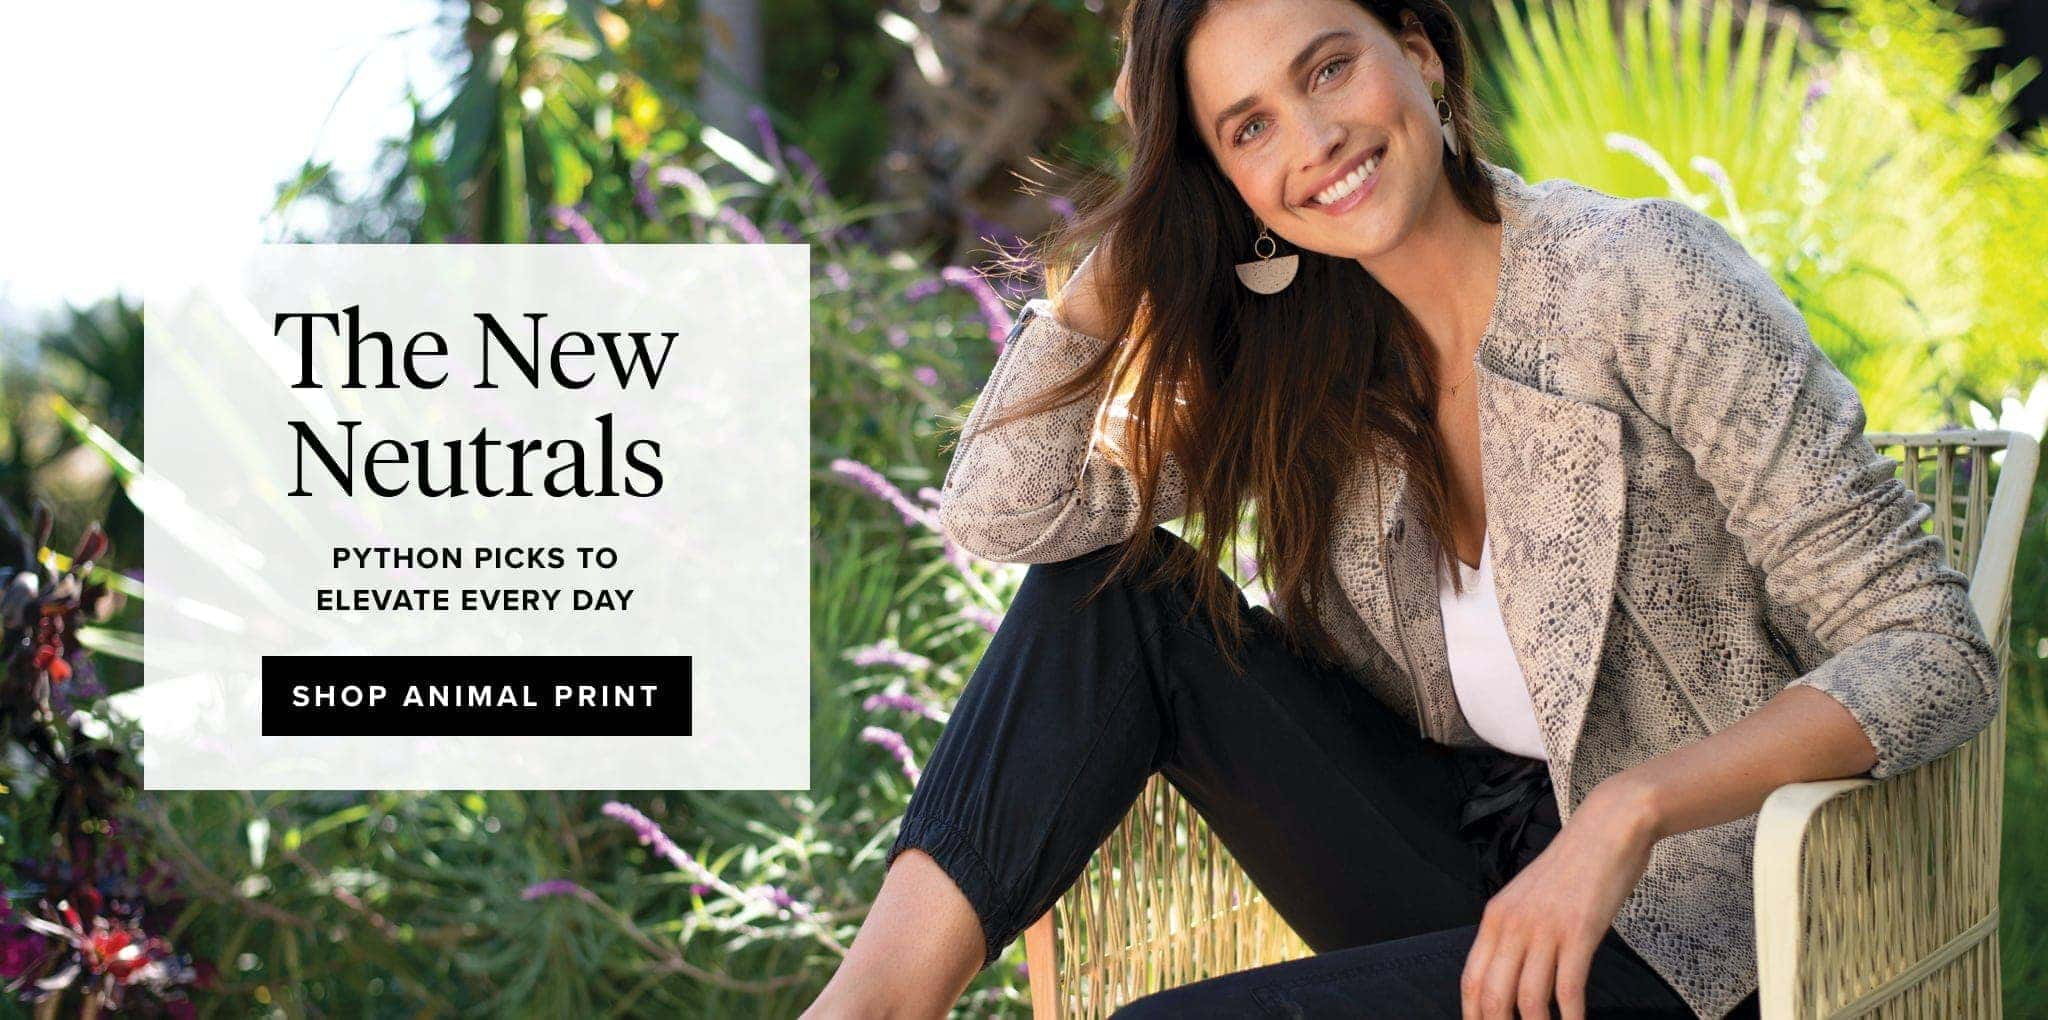 The New Neutrals- python picks to elevate every day - SHOP ANIMAL PRINT